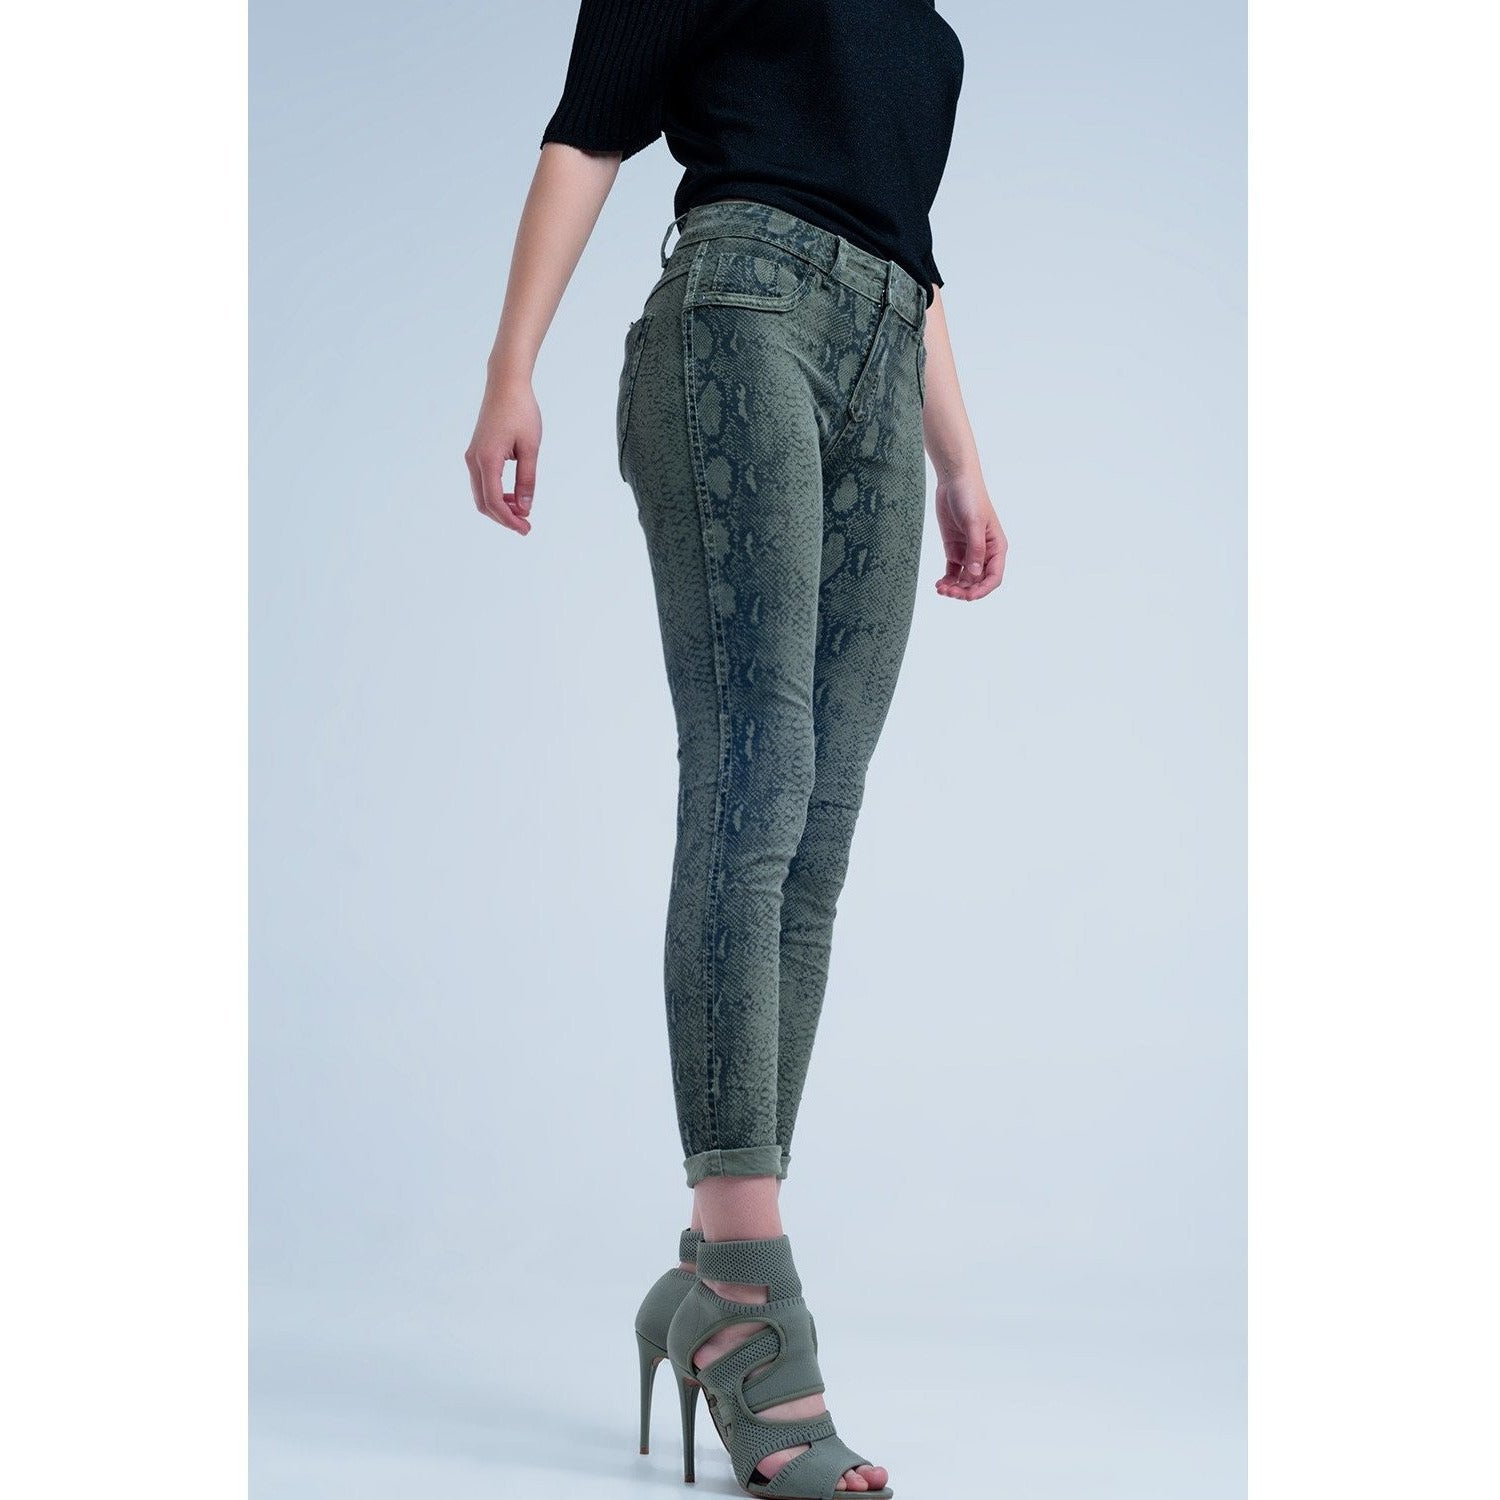 Green Skinny Reversible Jeans With Snake Print - Miraposa